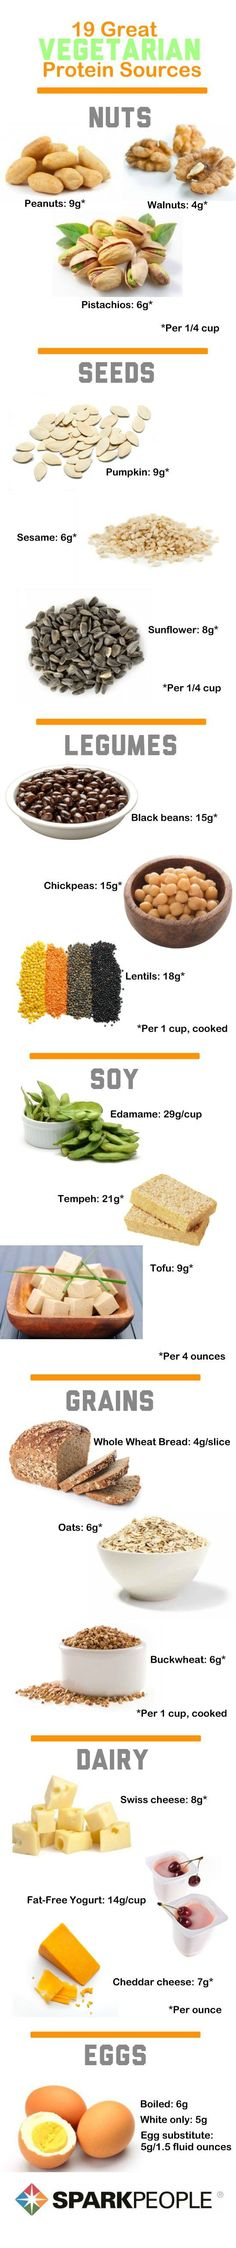 The Best Meatless #Protein Sources | via @SparkPeople #vegetarian